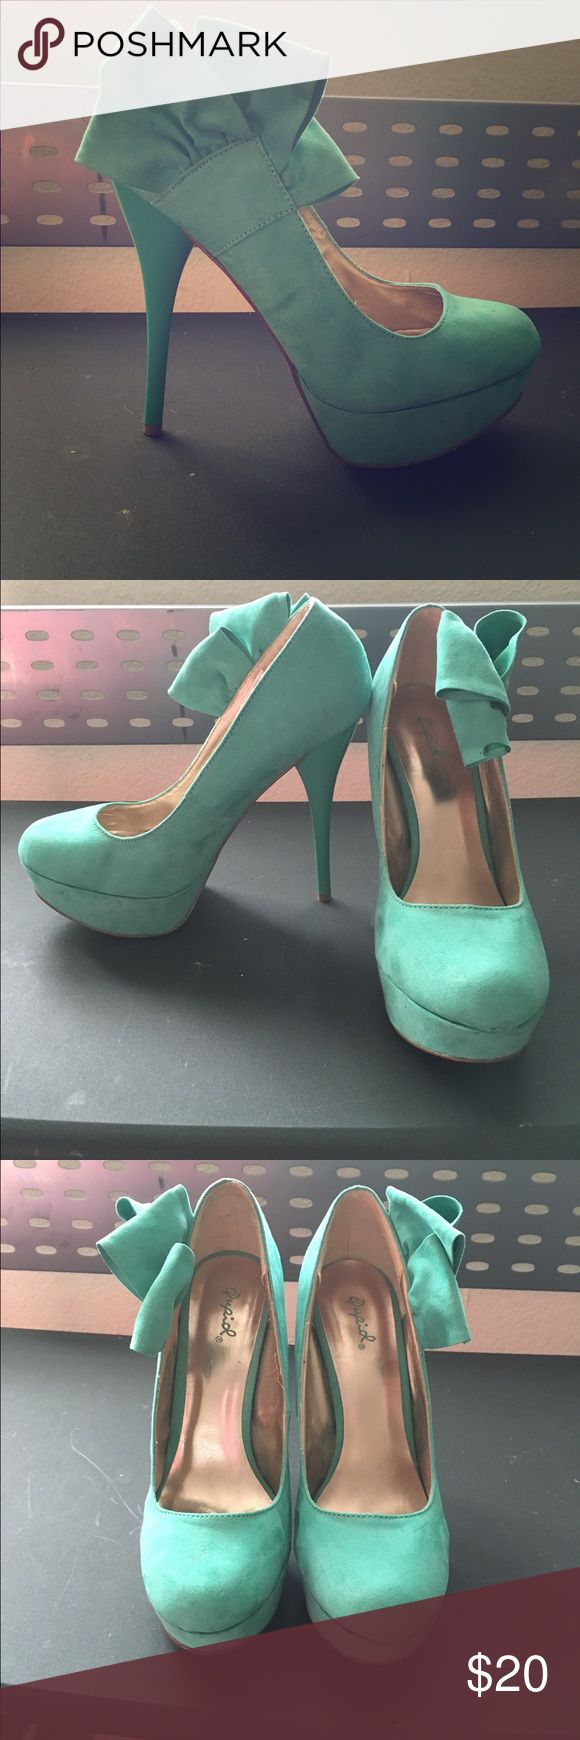 Mint heel These super cute mint pumps are comfortable and stylish! Only worn twice and in good condition. Size 8.5.  Heel height is 5 inches Shoes Heels